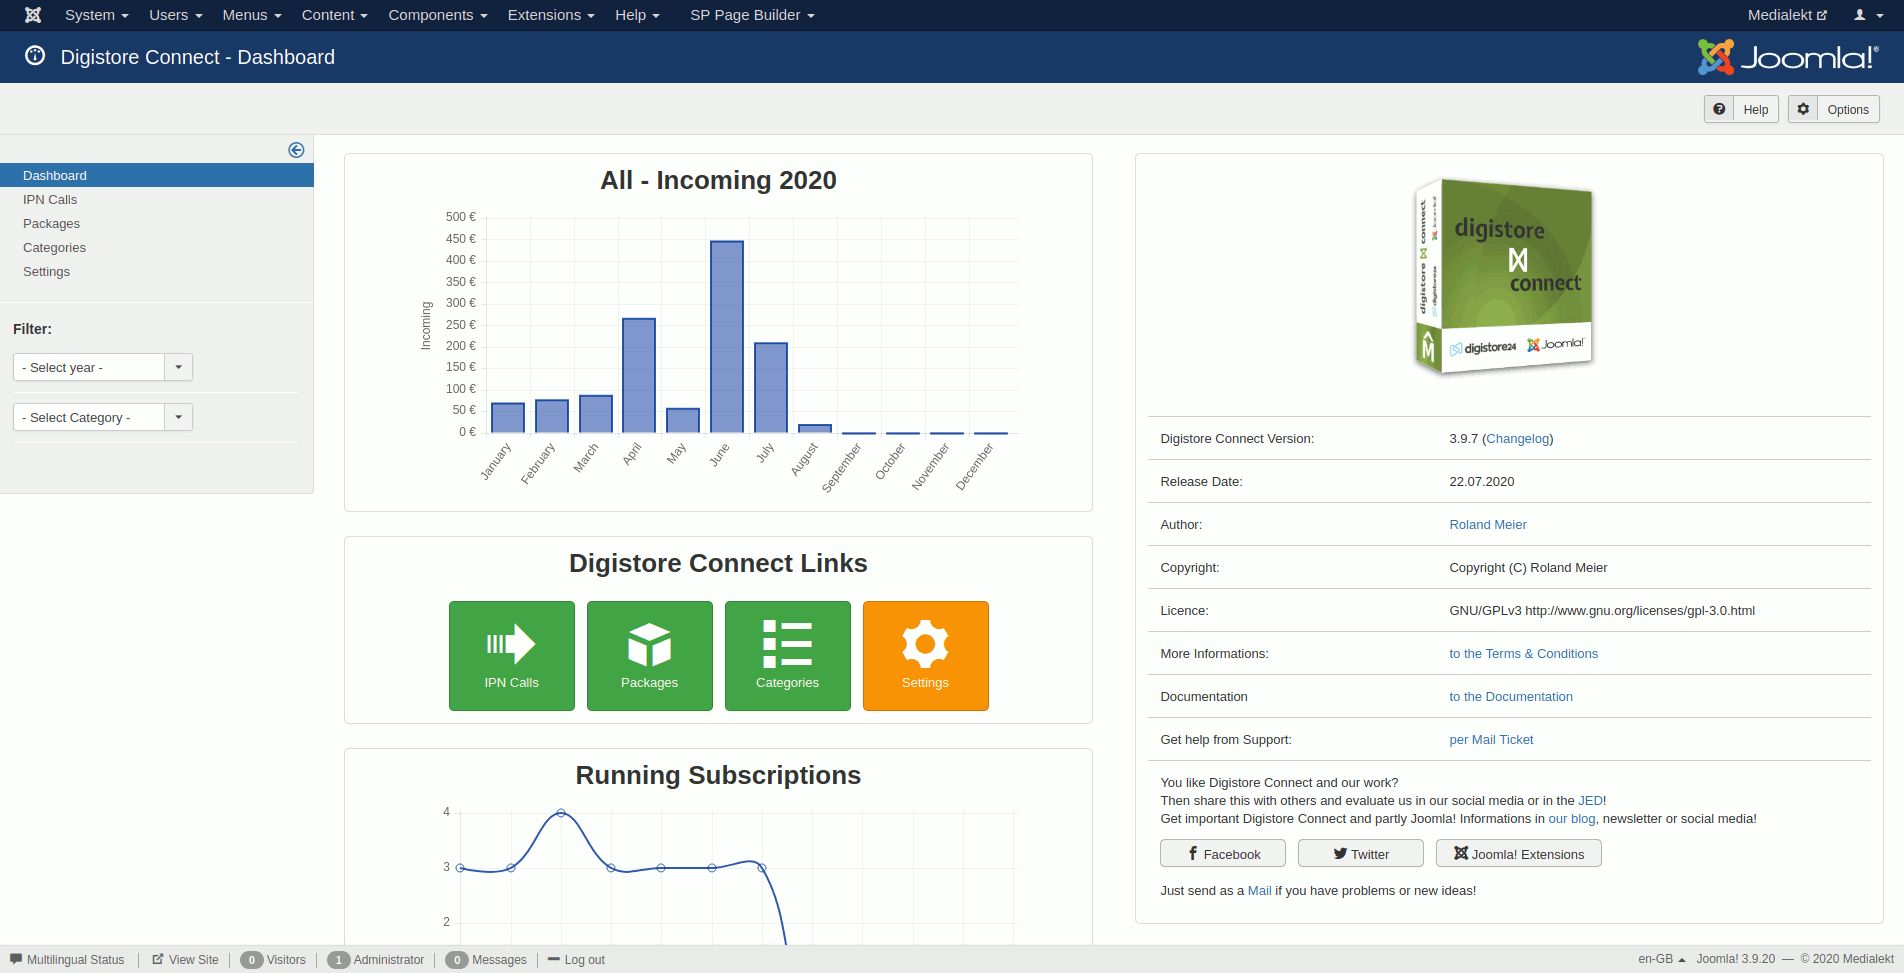 Digistore Connect Dashboard